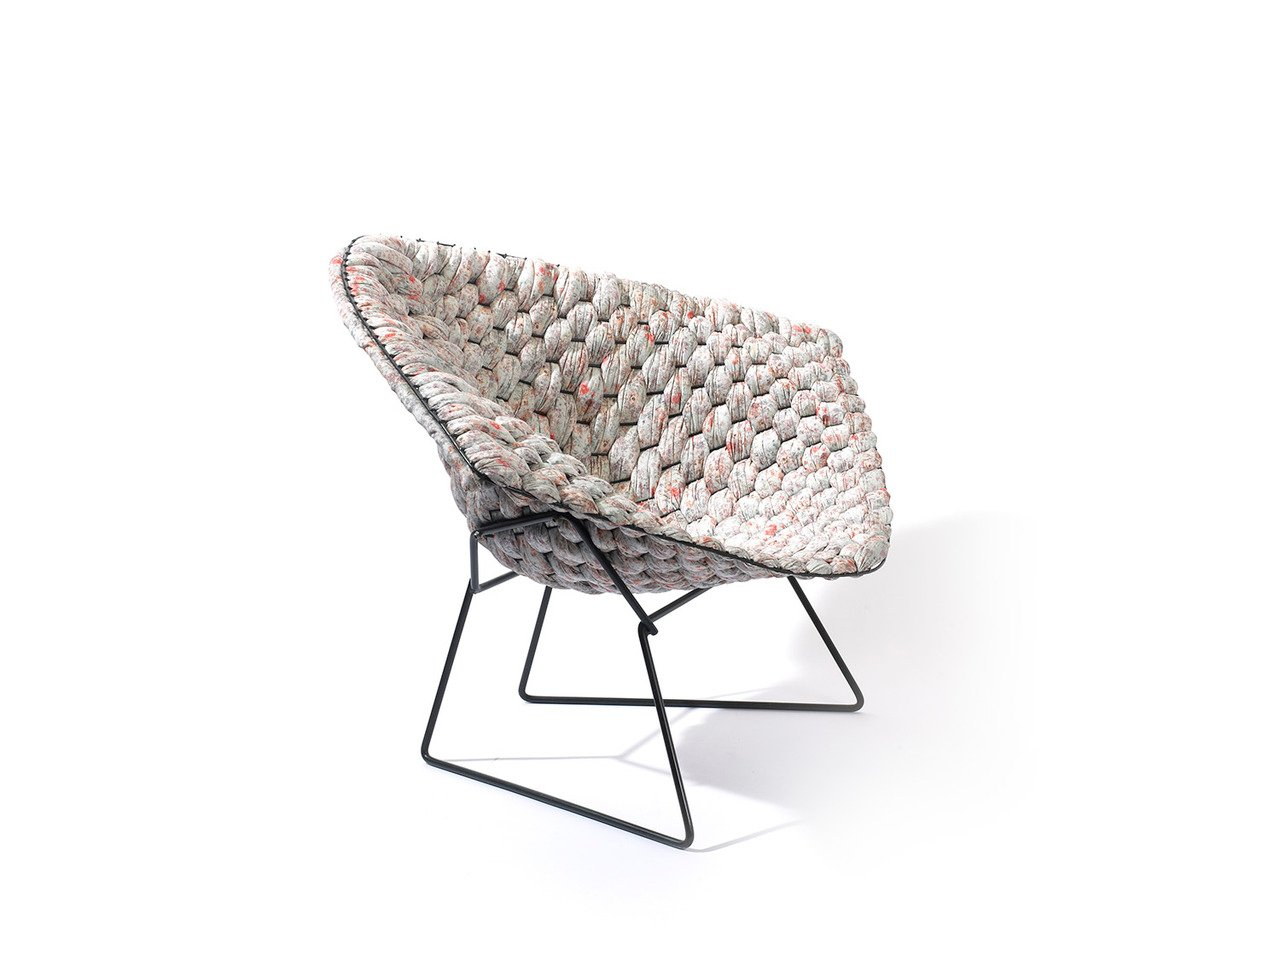 cl ment brazille reinvents the iconic bertoia chair with comfortable knitted upholstery 6sqft. Black Bedroom Furniture Sets. Home Design Ideas